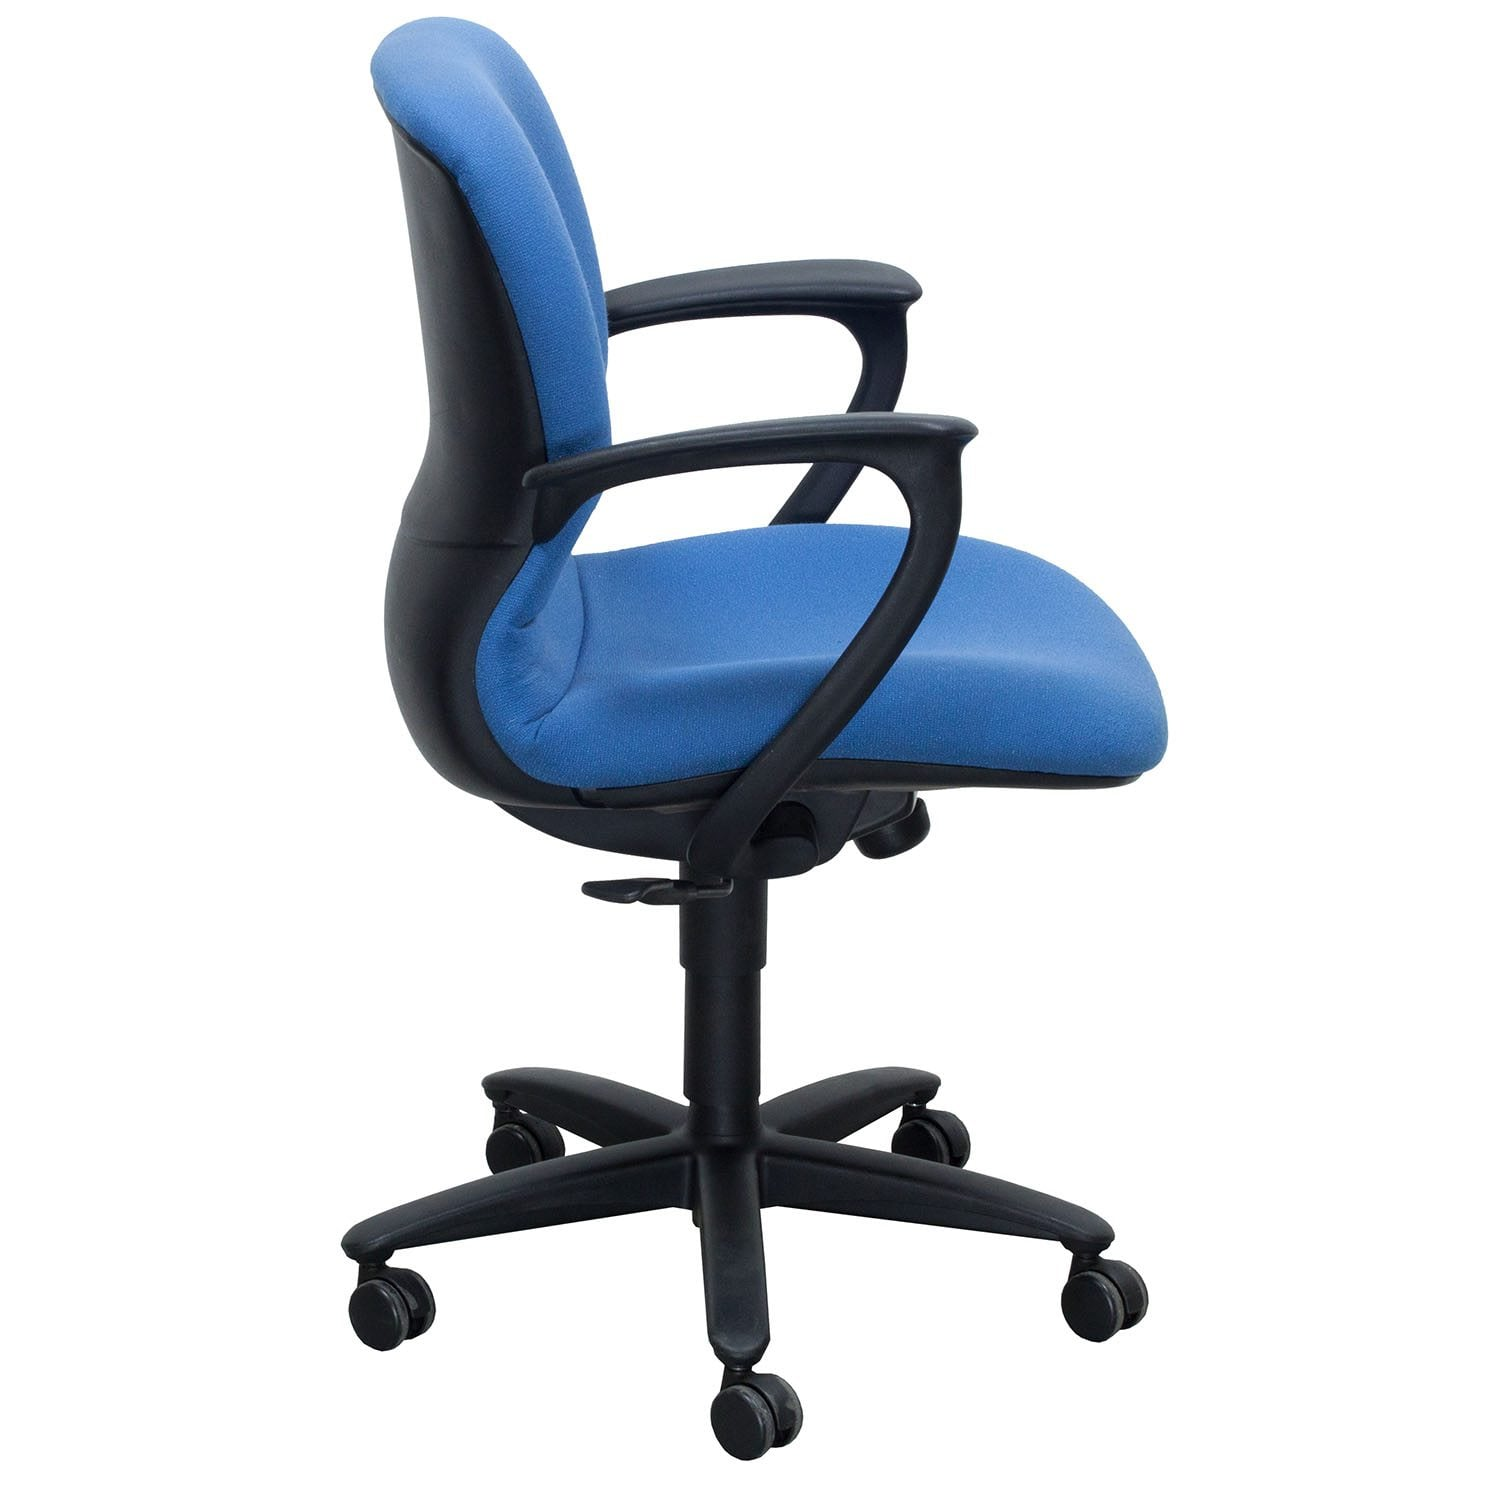 used desk chairs outdoor reclining chair haworth improv conference blue national